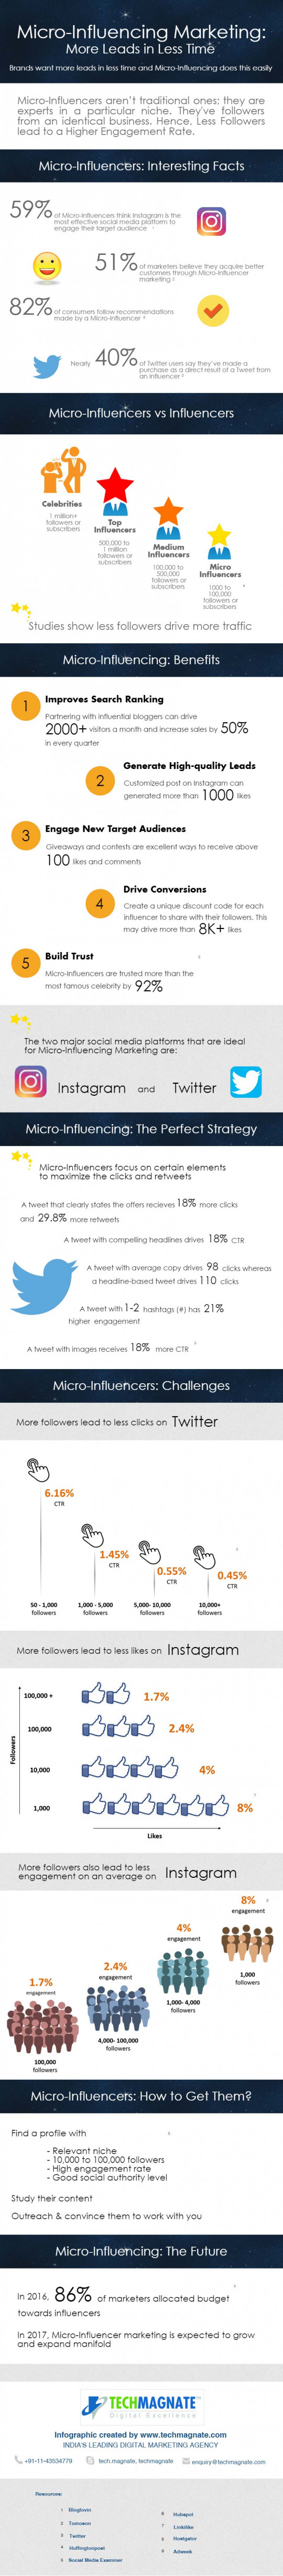 Micro-Influencer Marketing by Techmagnate